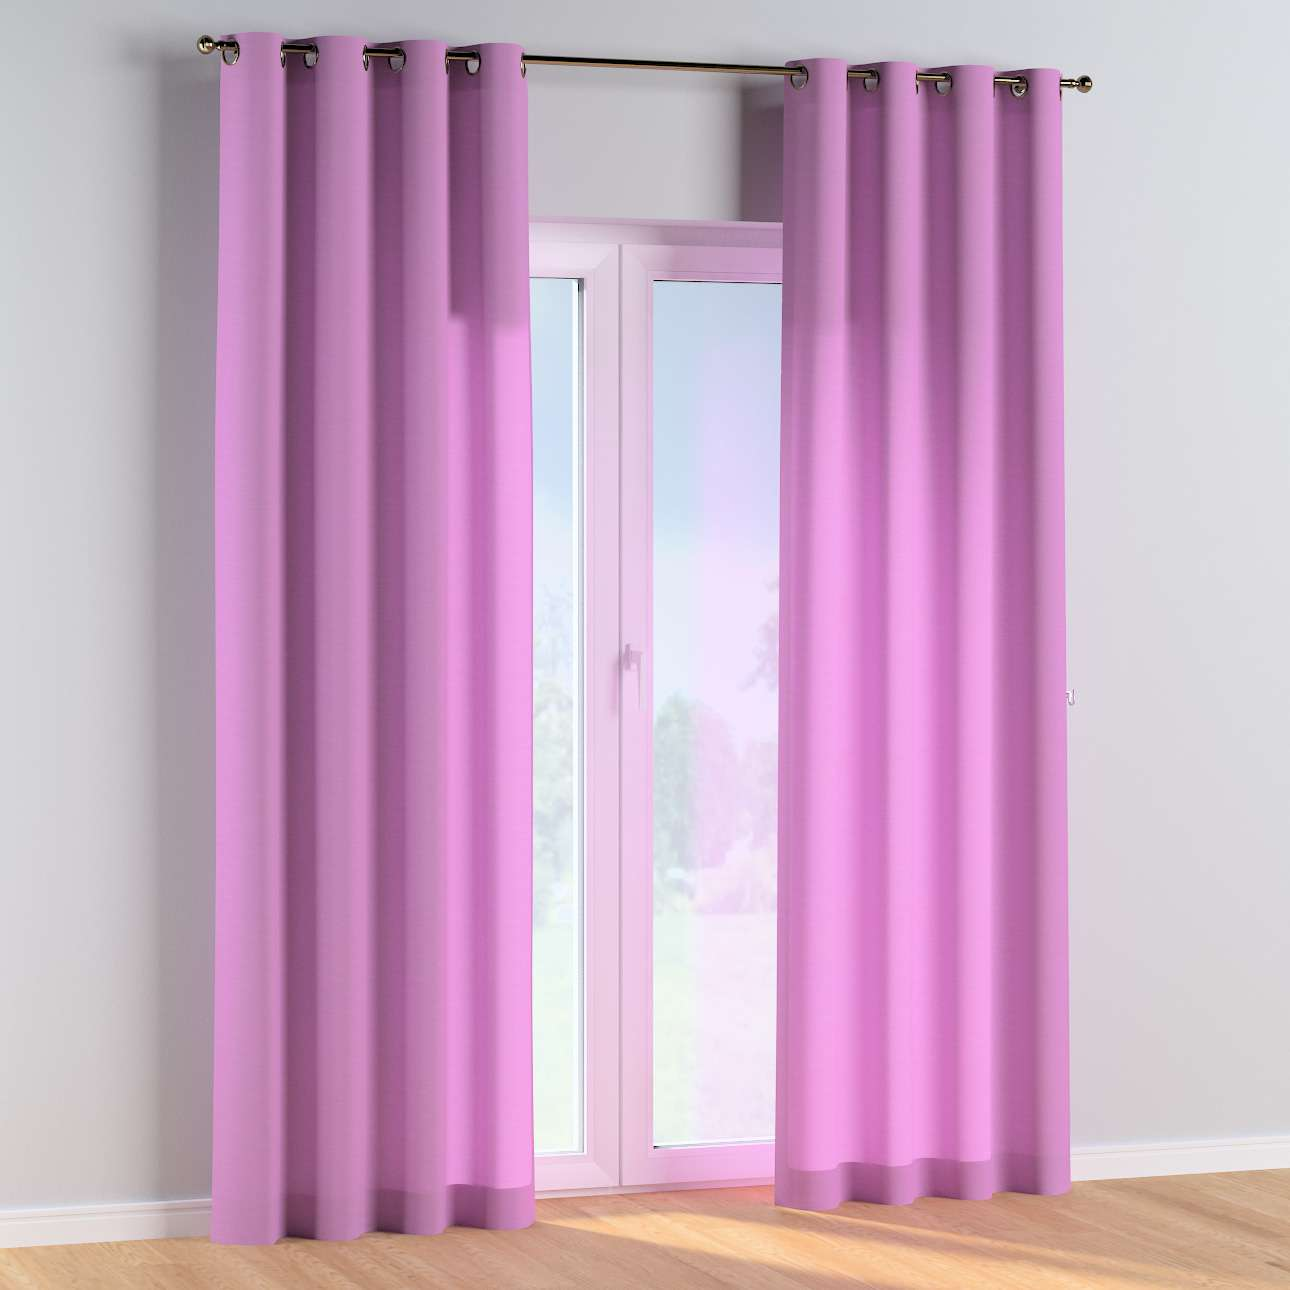 Eyelet curtains in collection Happiness, fabric: 133-38